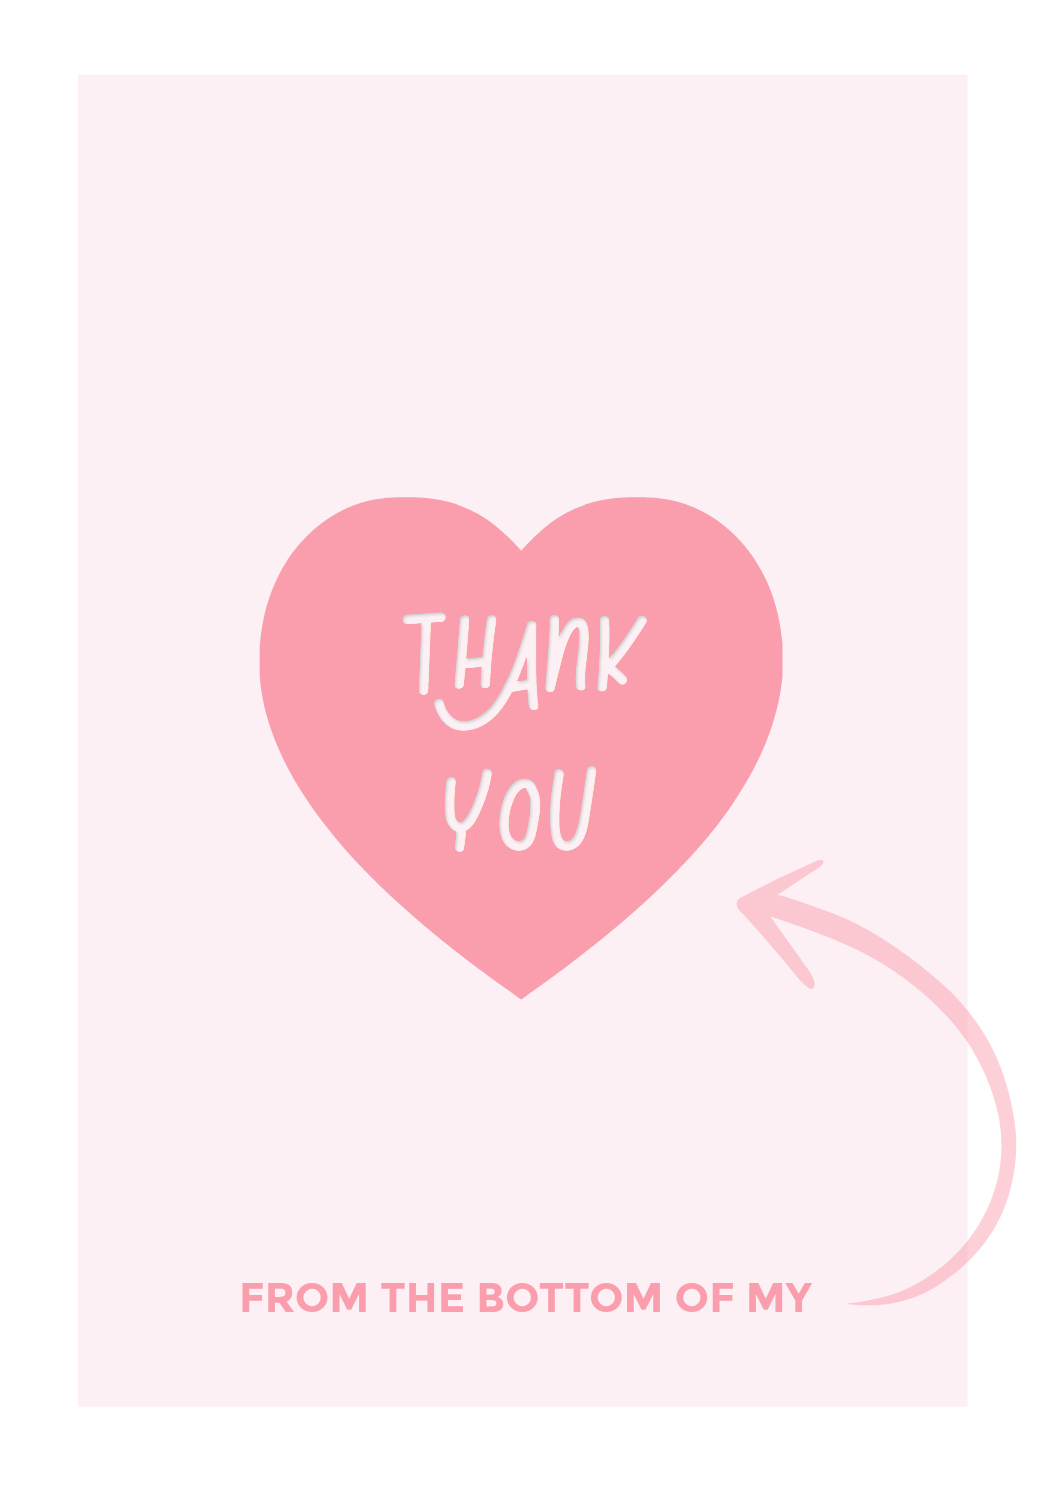 Free thank you download